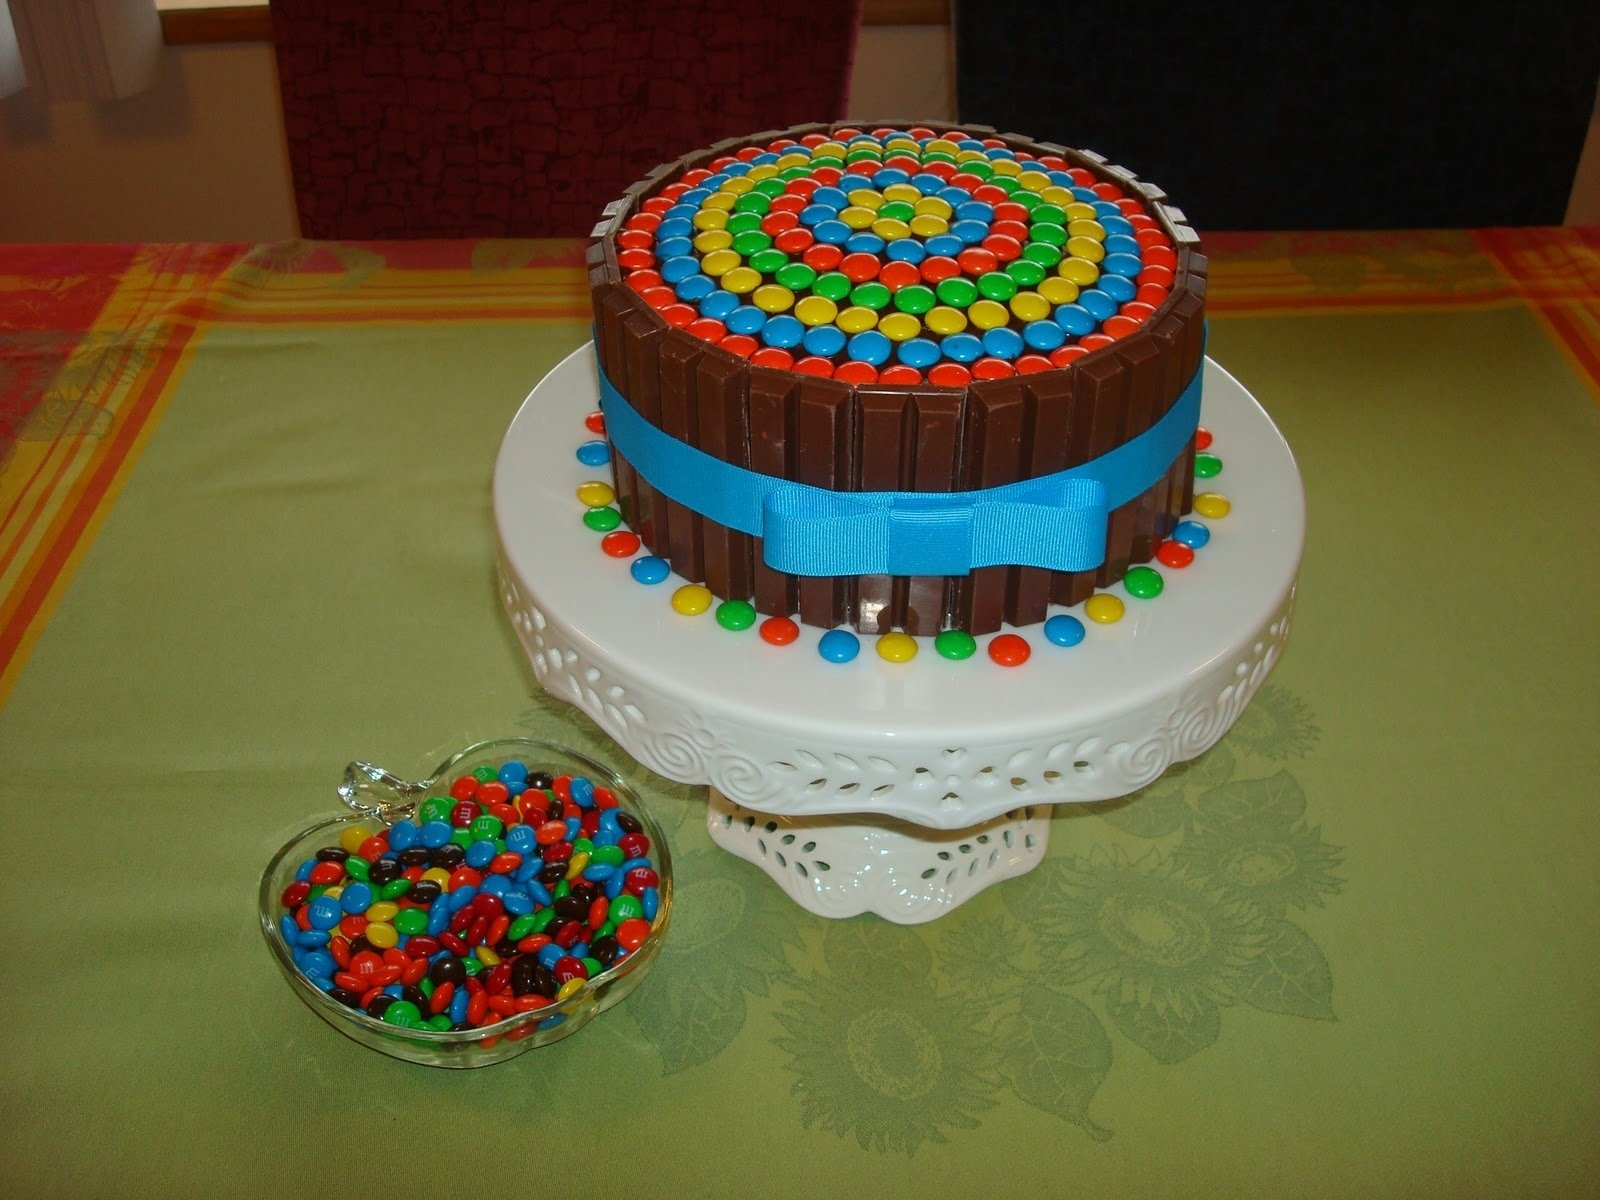 10 Best 10 Year Old Boy Party Ideas 12 year old boy cakes cake well technically i didn t promise a 3